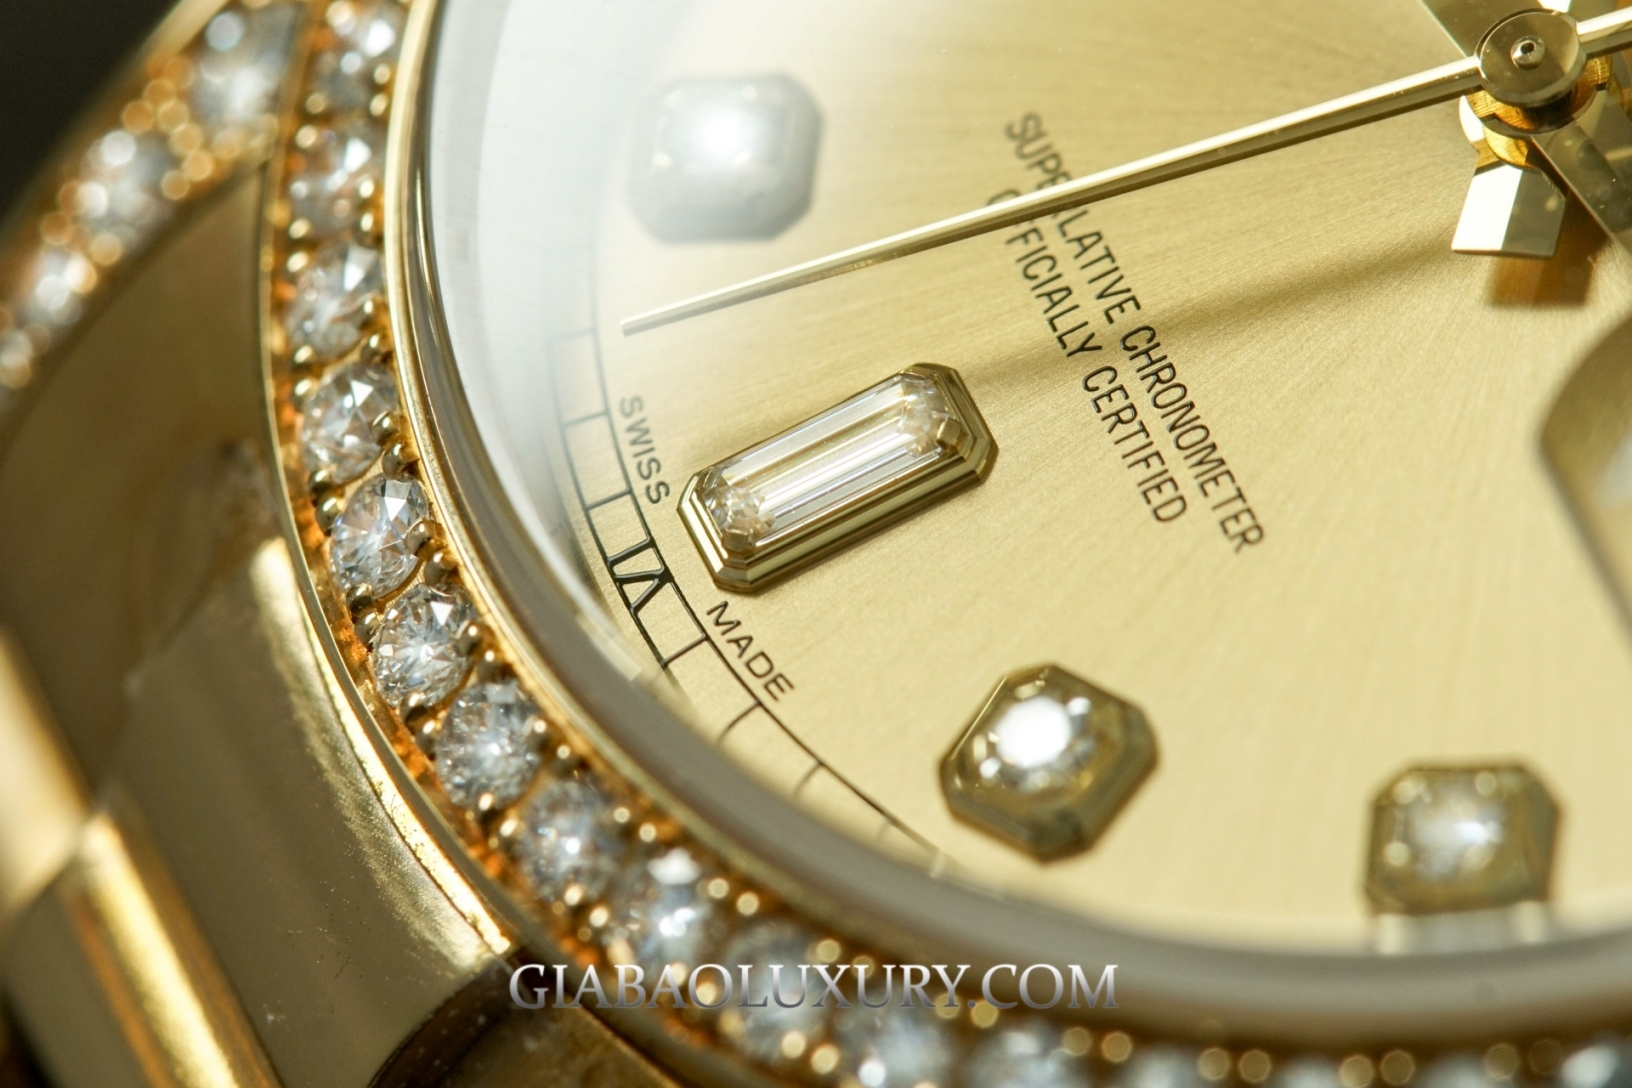 Review đồng hồ Rolex Day-Date 36mm 118388 và Rolex Lady Datejust 26mm 179158